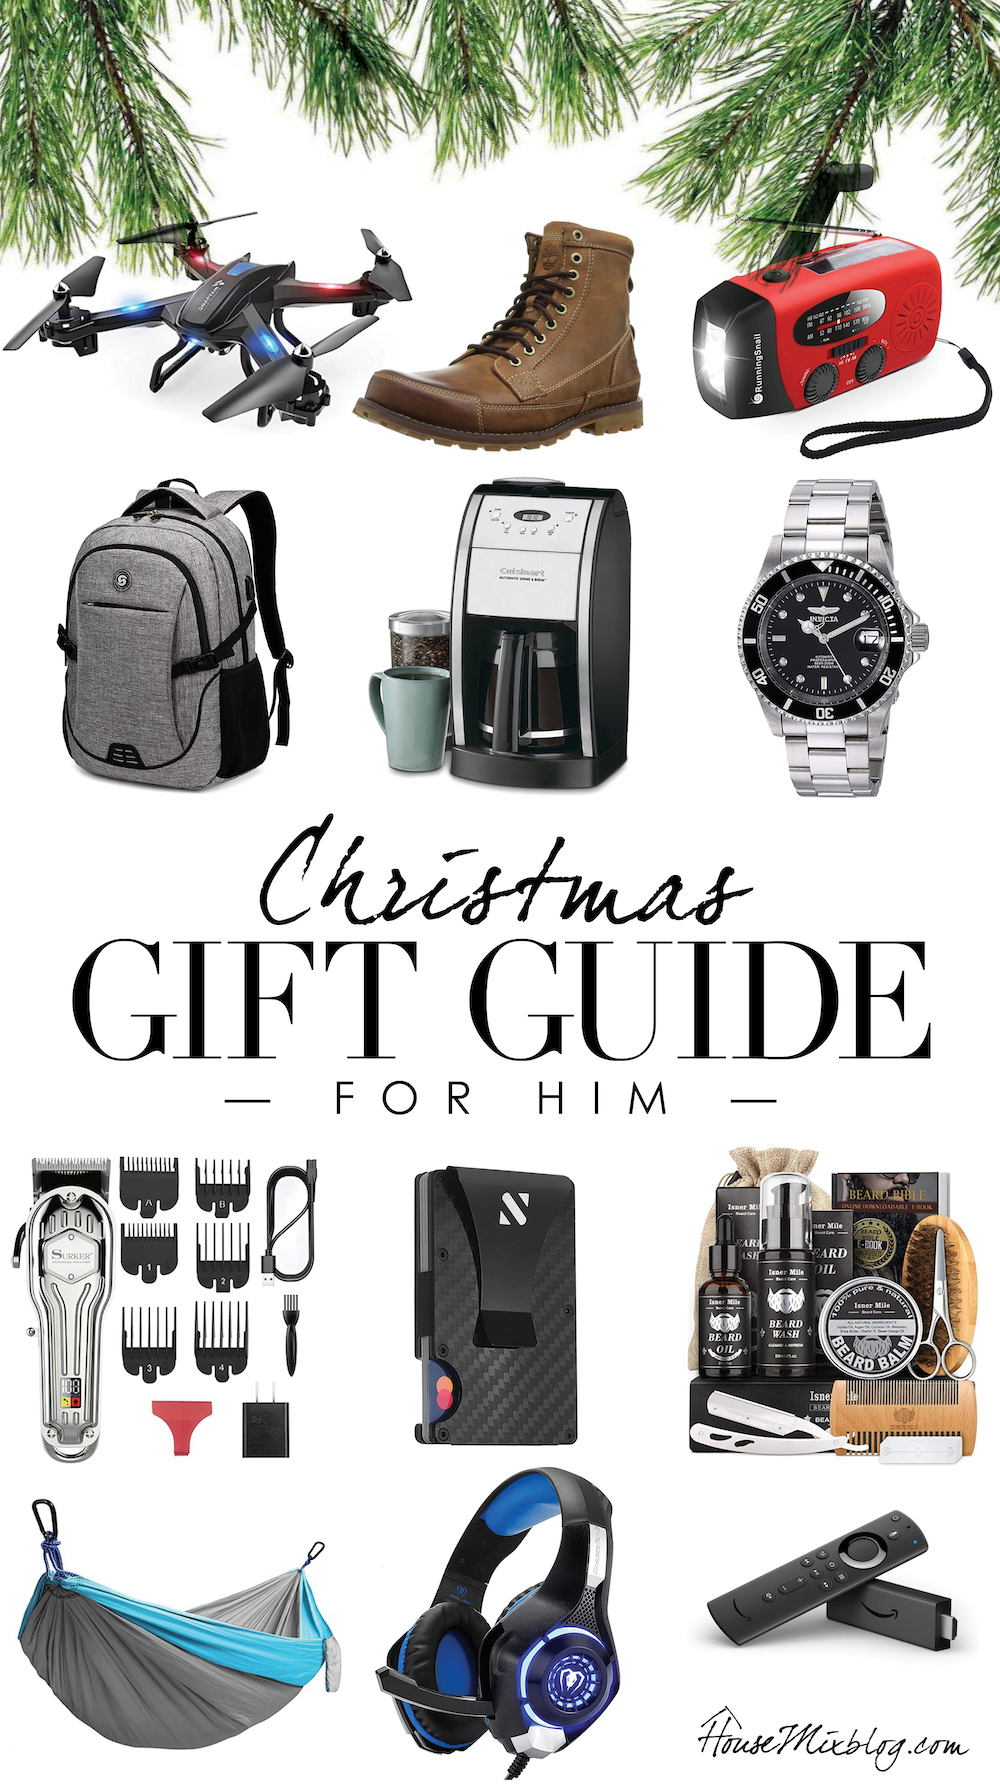 Christmas gift guide for him - husband, father in law, brother, men, dad